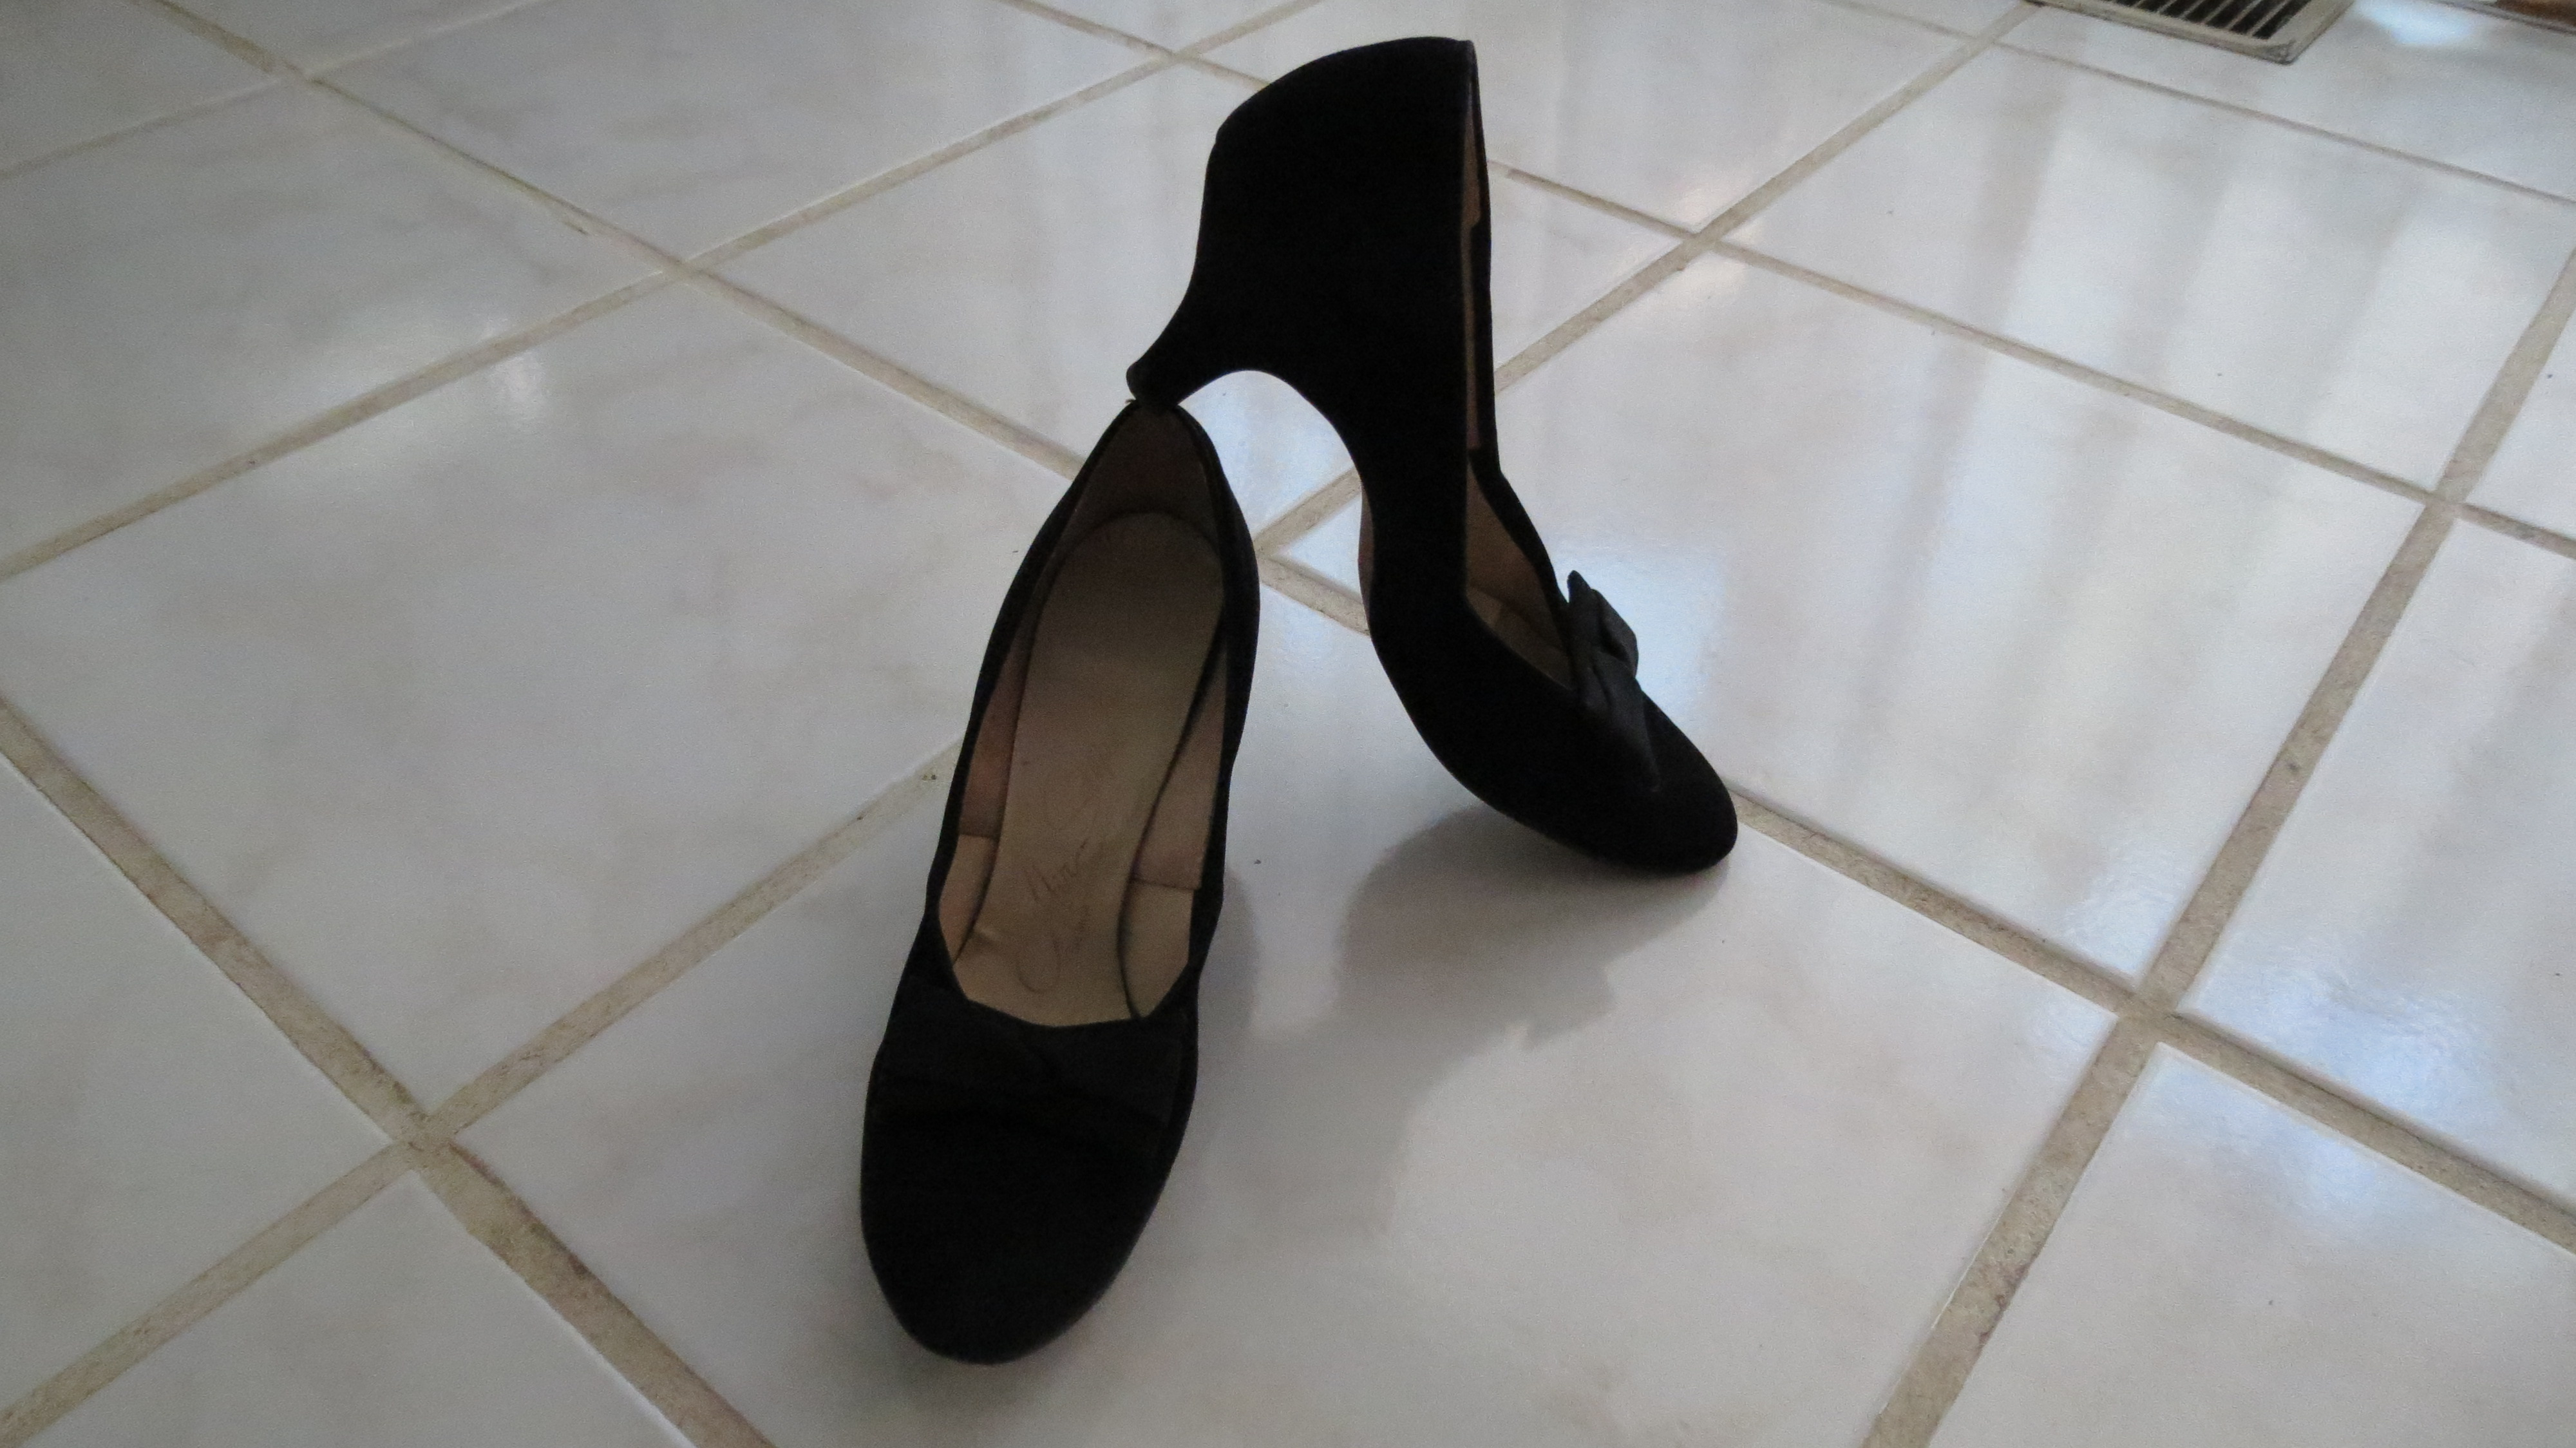 TRUE VINTAGE BLACK, ORNAMENTED MID-HEEL PUMPS FROM THE 1940'S - EARLY 1950'S